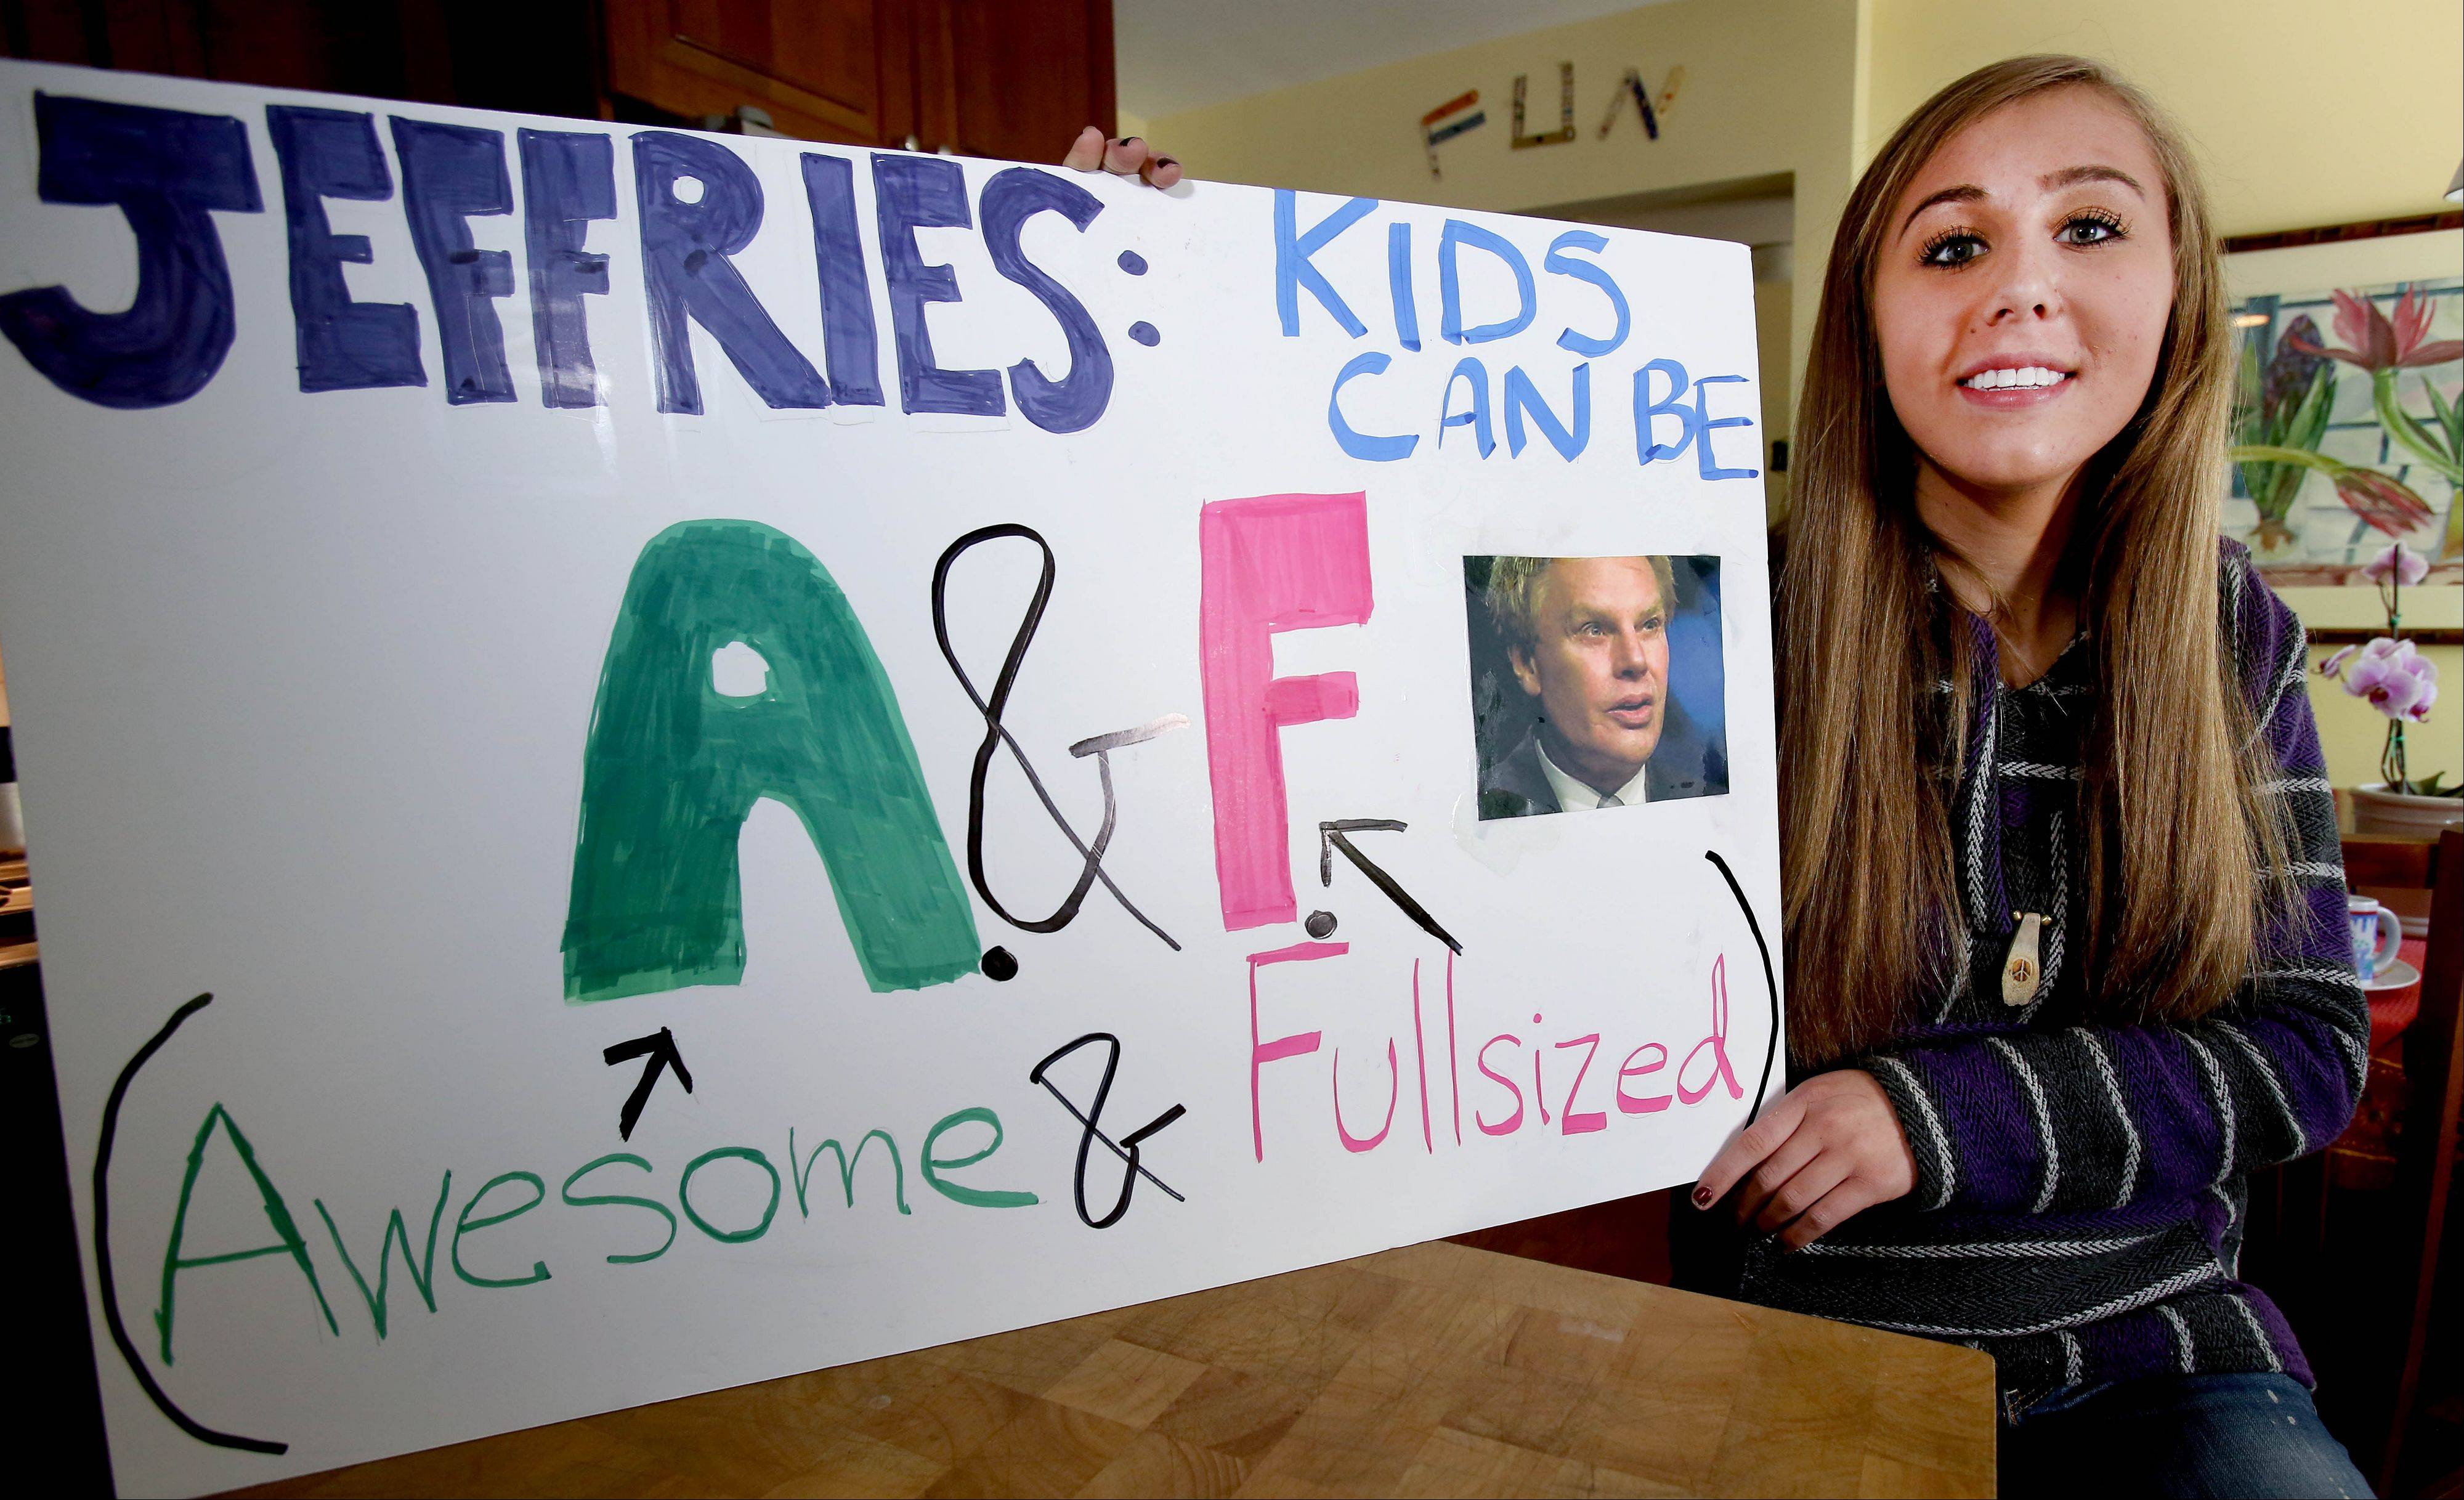 Cali Linstrom of Glen Ellyn took Abercrombie & Fitch to task over �fat� comments and received not only an apology but a sit-down meeting with company executives.